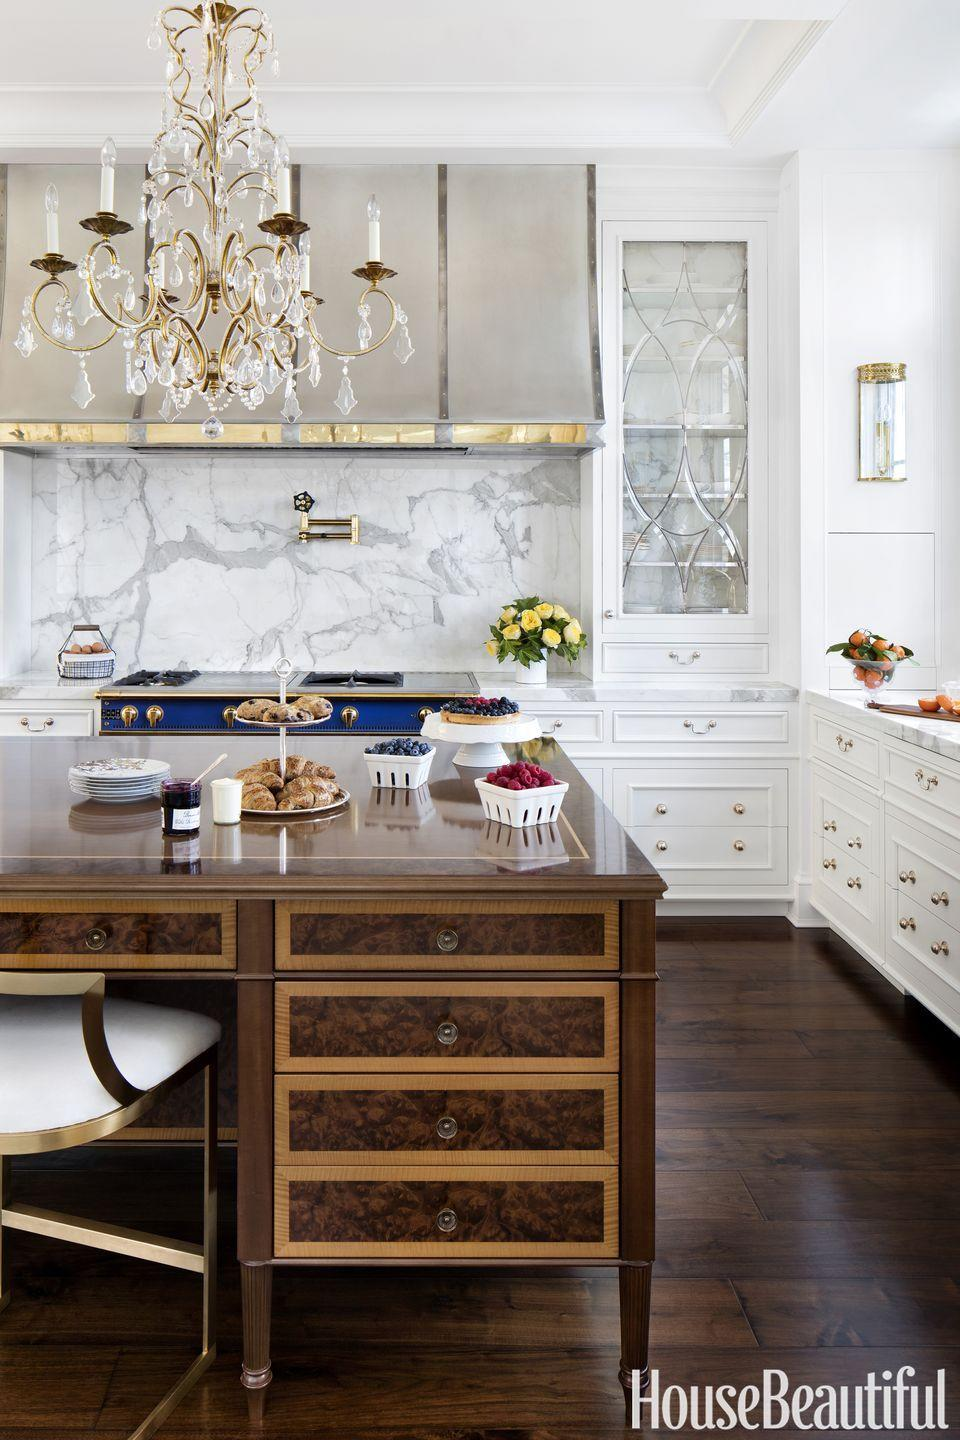 "<p>Crafted from walnut, imbuia, and anigre, the nearly 11-foot-long <span class=""redactor-unlink"">island</span> in this <a href=""https://www.housebeautiful.com/room-decorating/kitchens/g4304/richard-anuszkiewicz-kitchen/"" rel=""nofollow noopener"" target=""_blank"" data-ylk=""slk:kitchen by Richard Anuszkiewicz"" class=""link rapid-noclick-resp"">kitchen by Richard Anuszkiewicz </a>was inspired by English antiques. Elegance to the max. </p>"